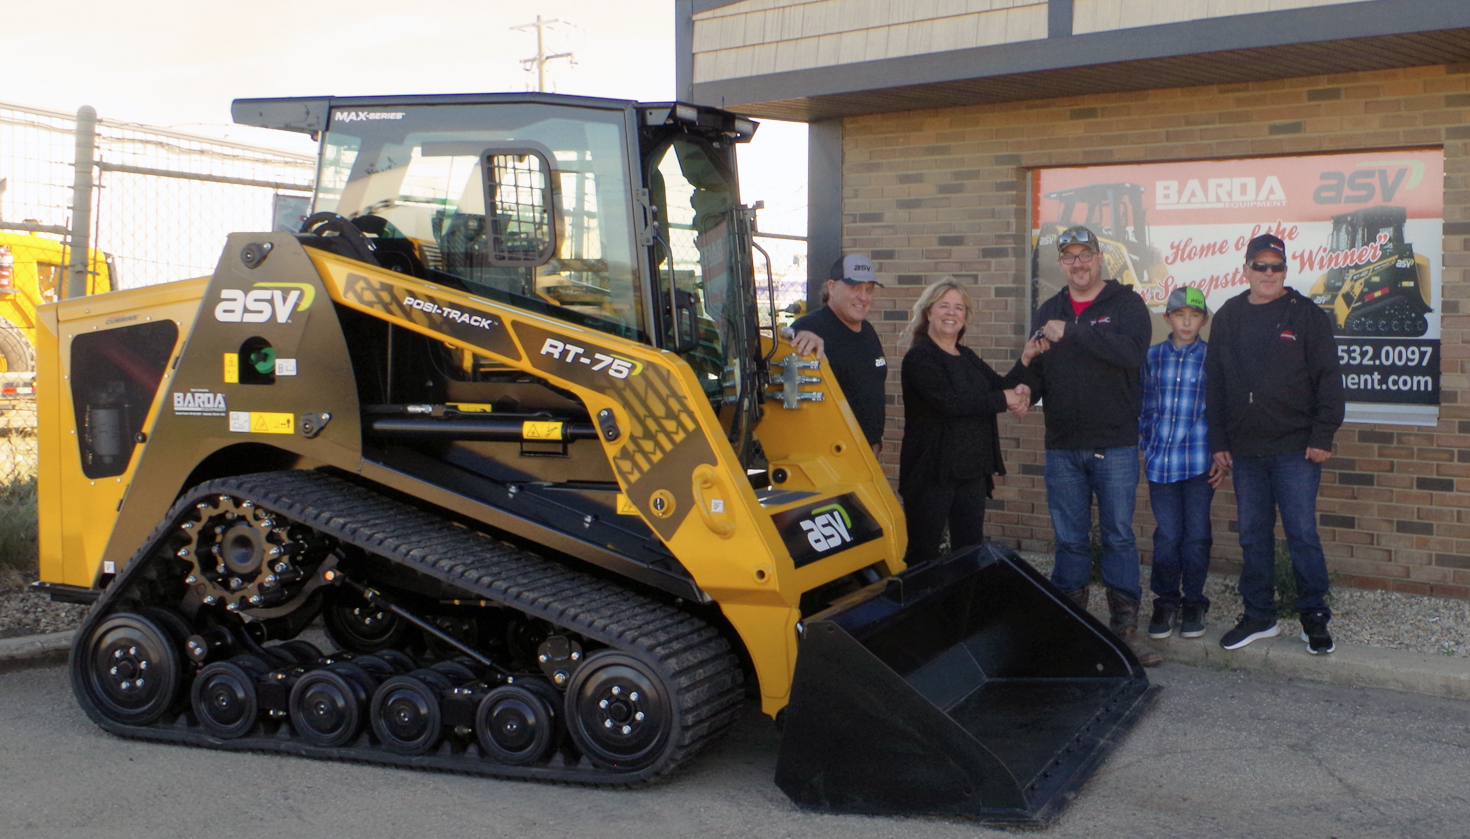 Andrew Stewart, co-owner of Redneks Field Services in Wembley, Alberta, Canada, is the winner of a 1-year lease of a MAX-Series RT-75 Posi-Track® loader.